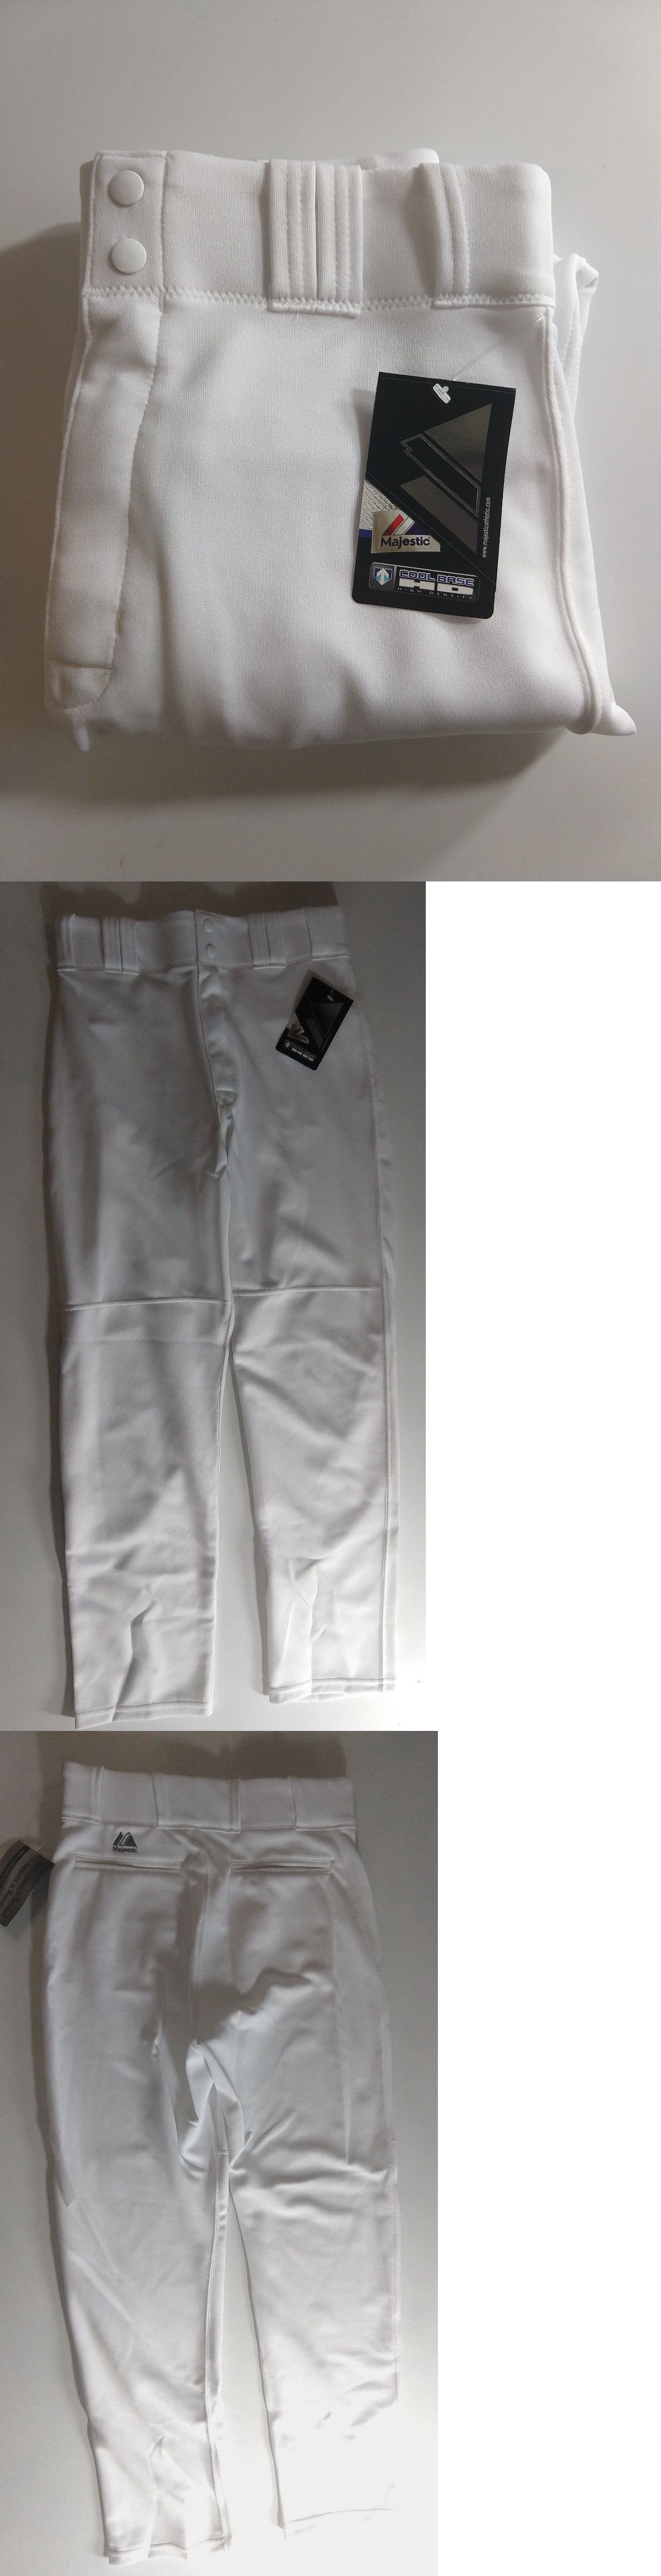 abe79b6775f9 Baseball Pants 181337  New Majestic Mlb Adult Cool Base Baseball Pants  White Style 8950 -  BUY IT NOW ONLY   19.99 on eBay!